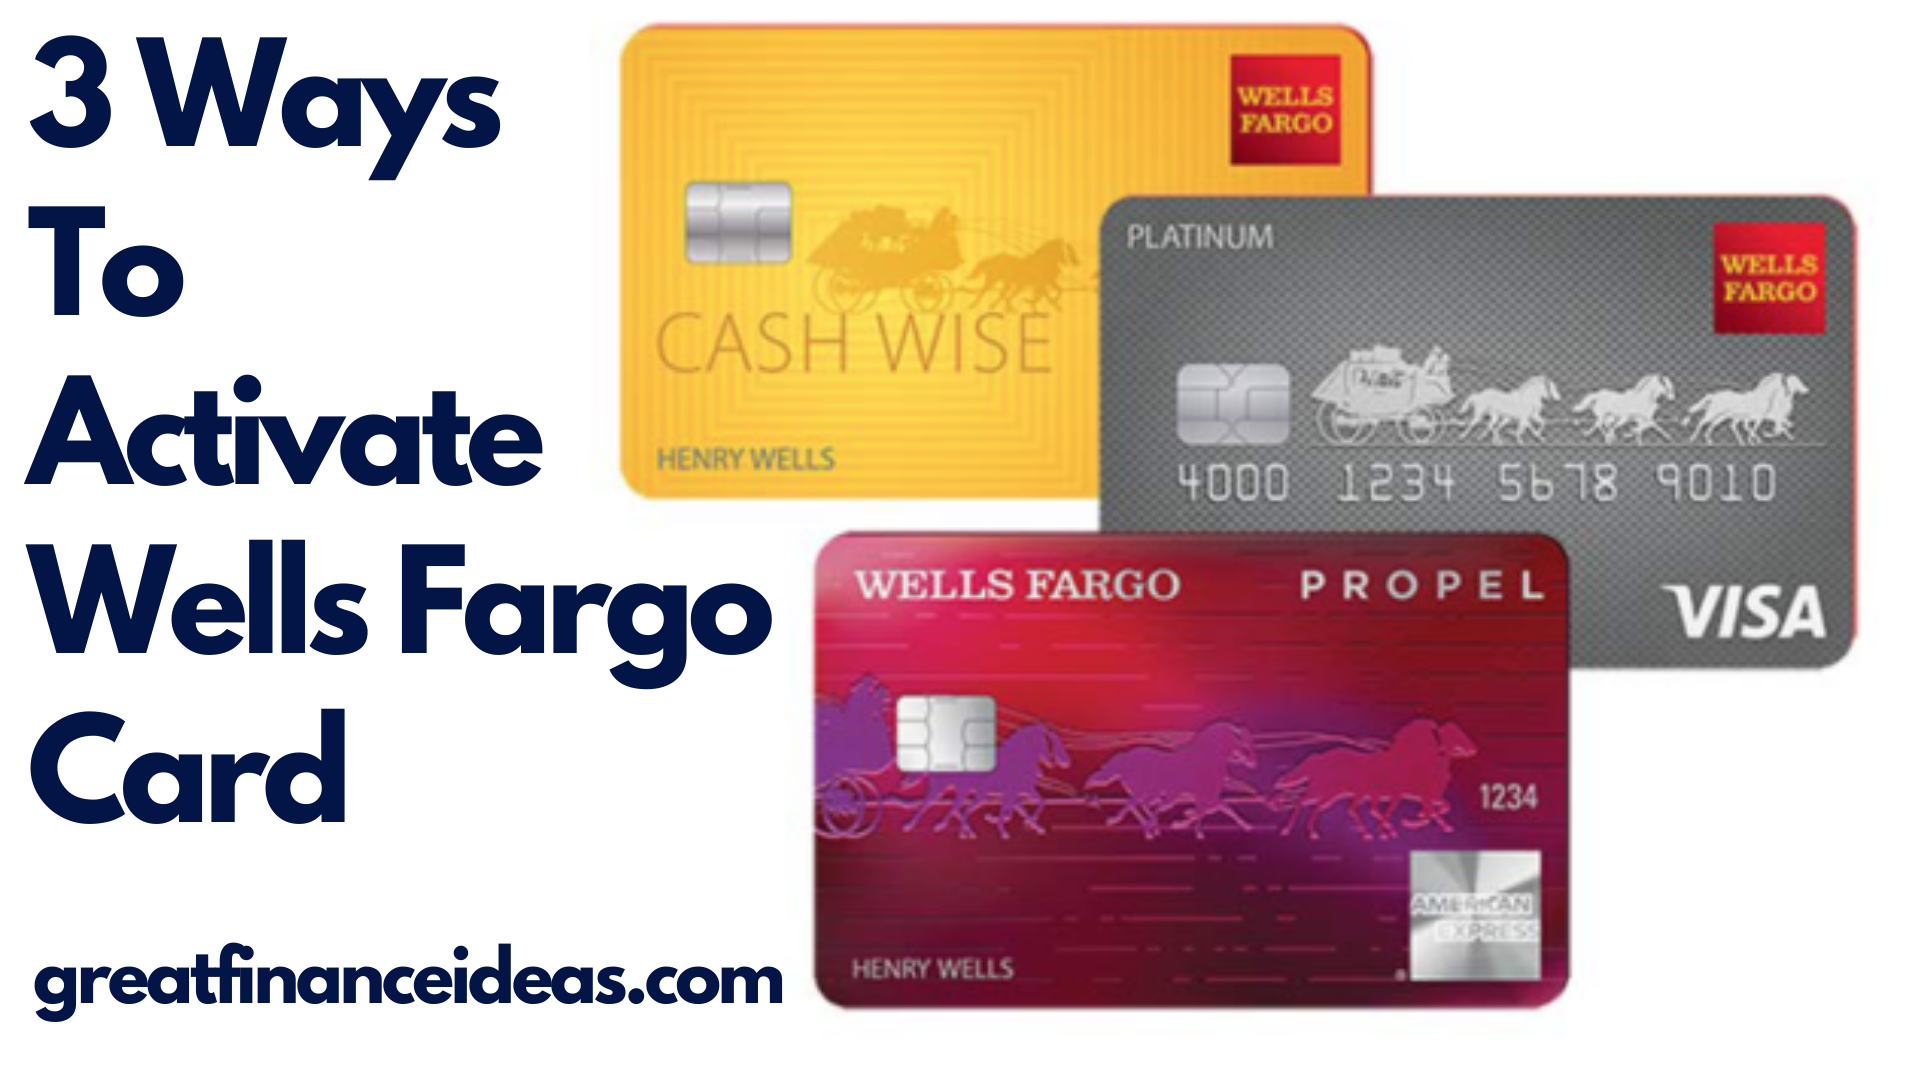 activate Wells Fargo Credit Card